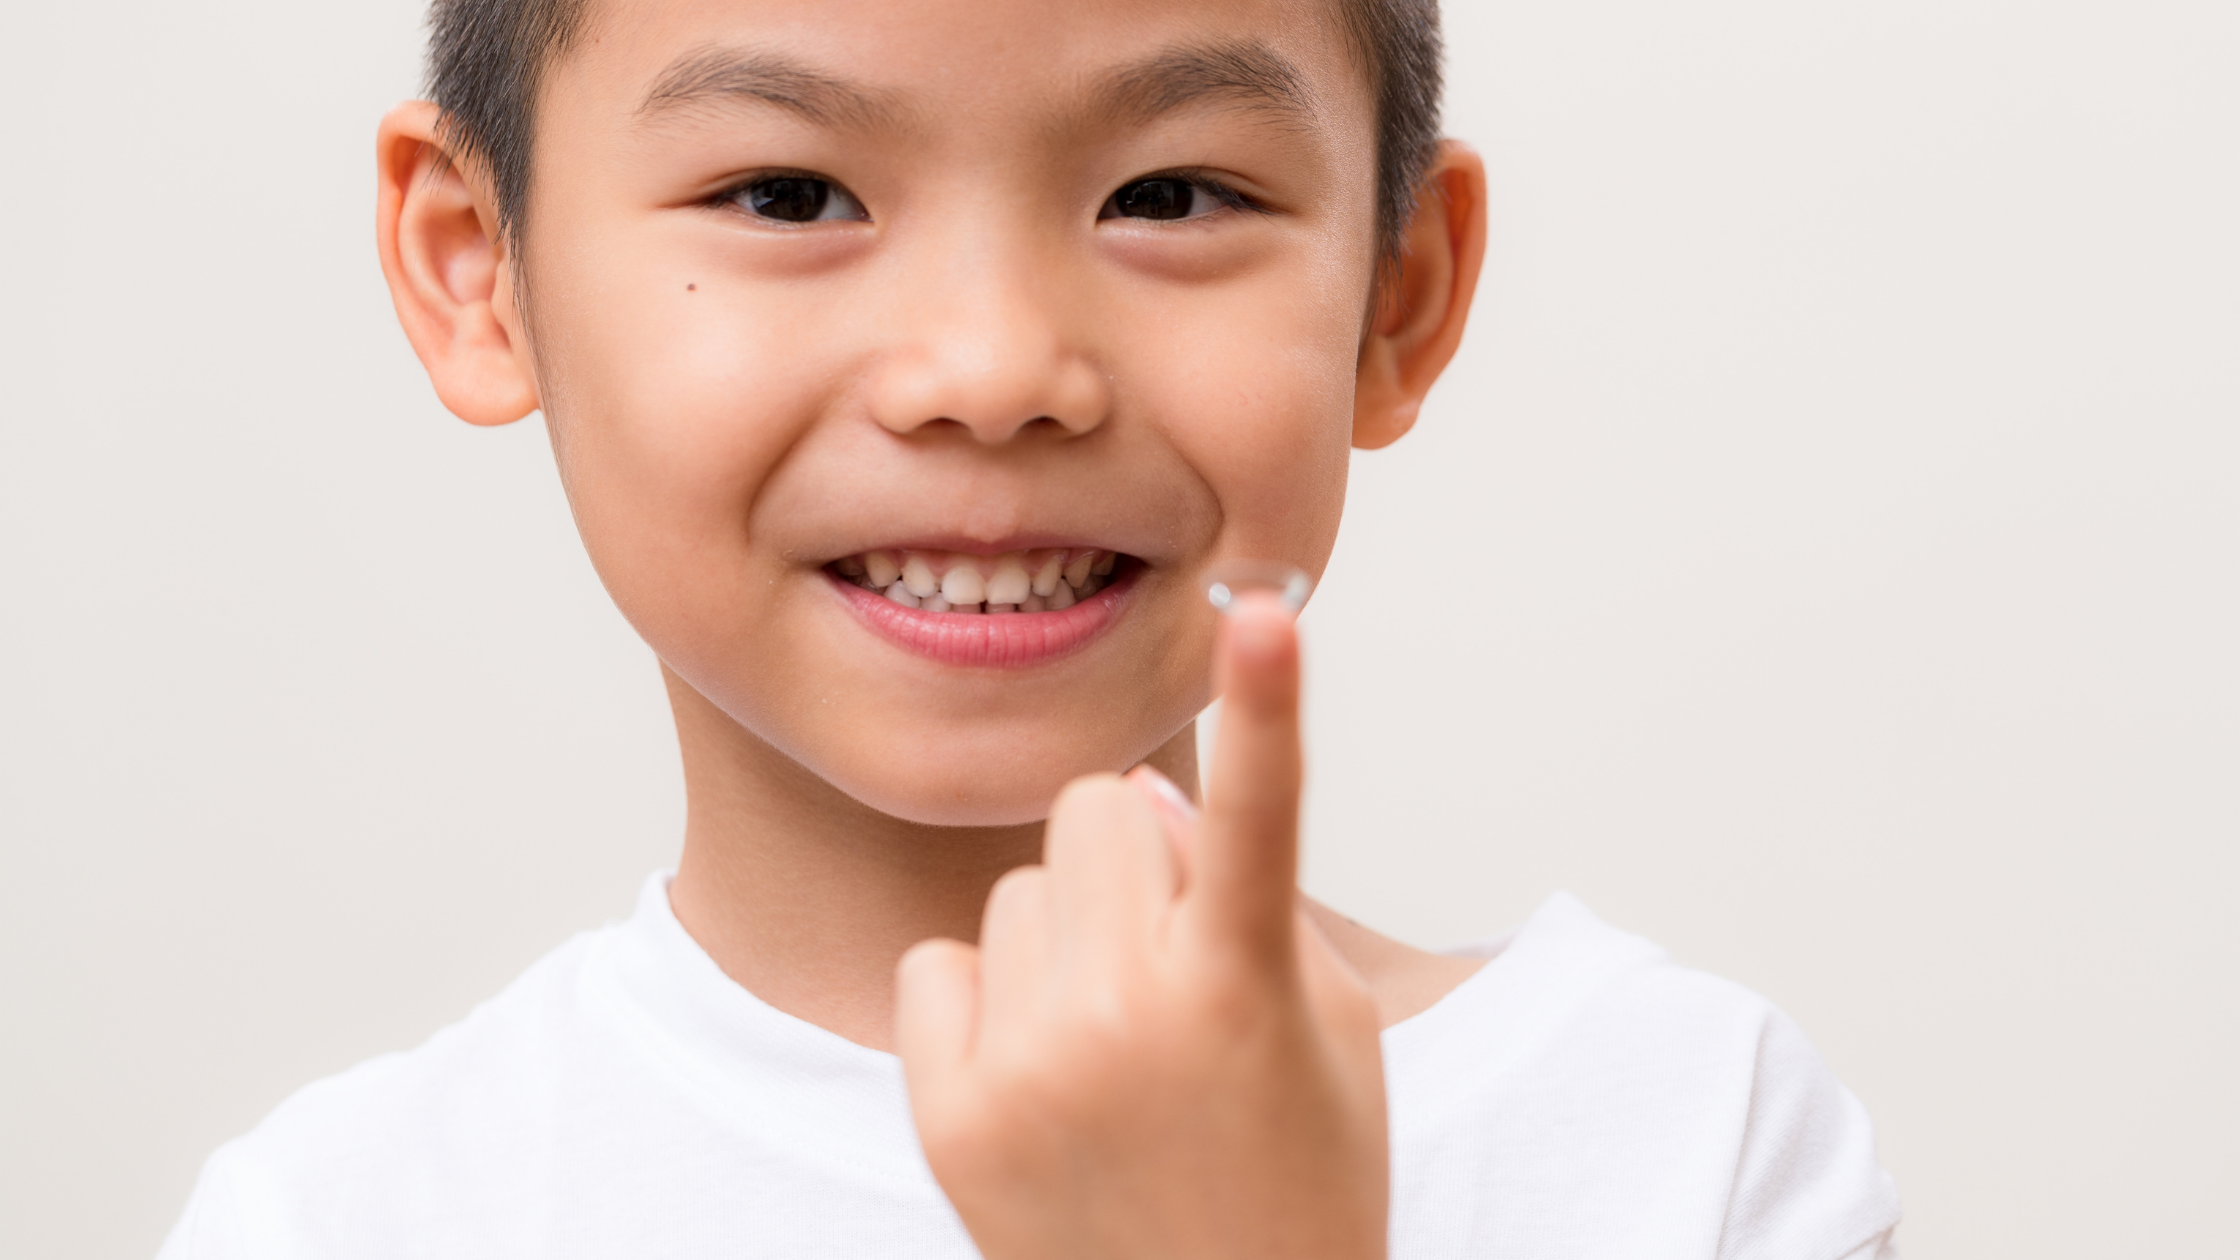 children's vision health, contact lenses for kids